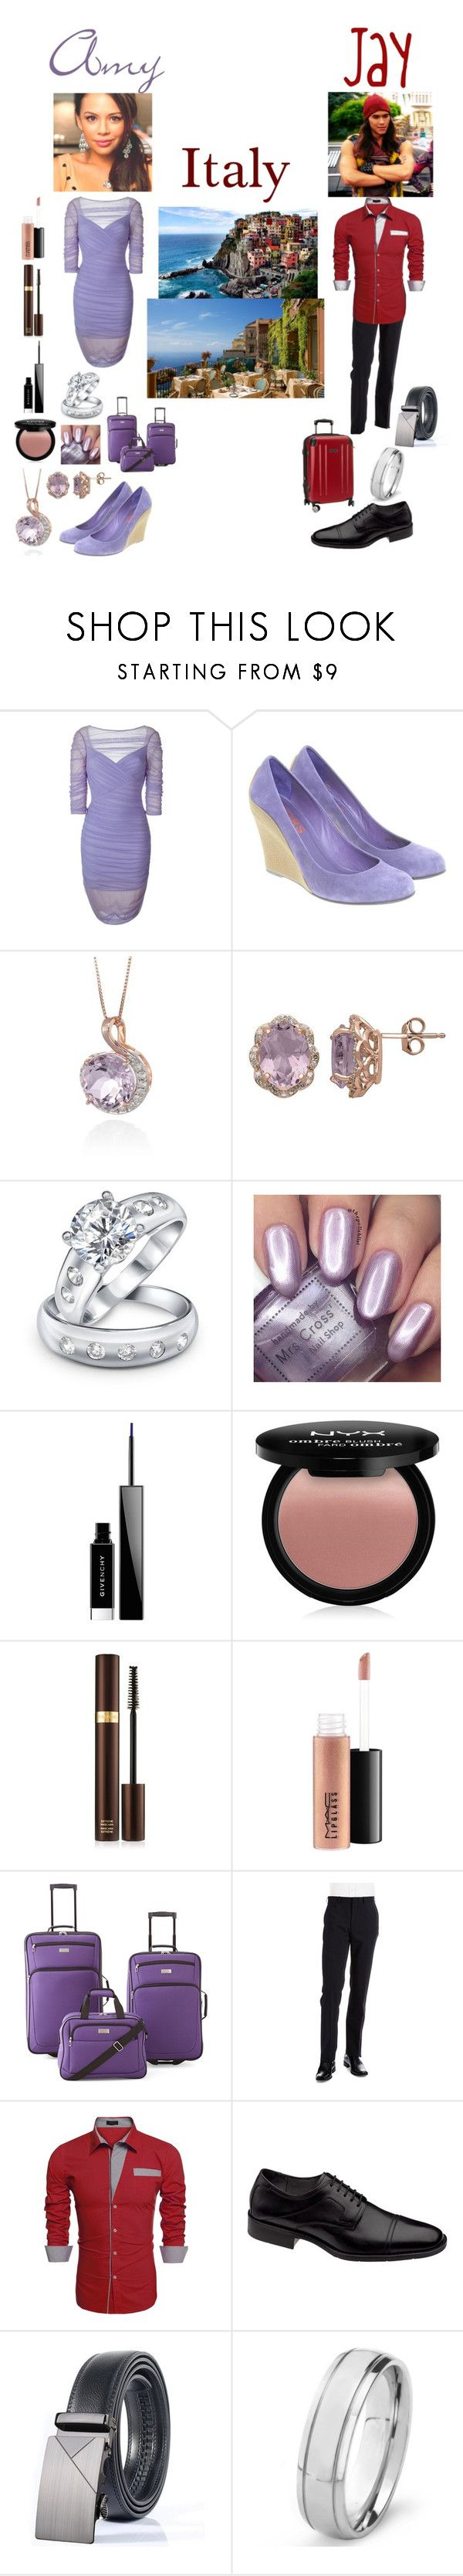 """Amy and Jay's Honeymoon"" by keih95 ❤ liked on Polyvore featuring Versace, Michael Kors, Belk & Co., Lord & Taylor, Bling Jewelry, Givenchy, NYX, Tom Ford, MAC Cosmetics and PROTOCOL"